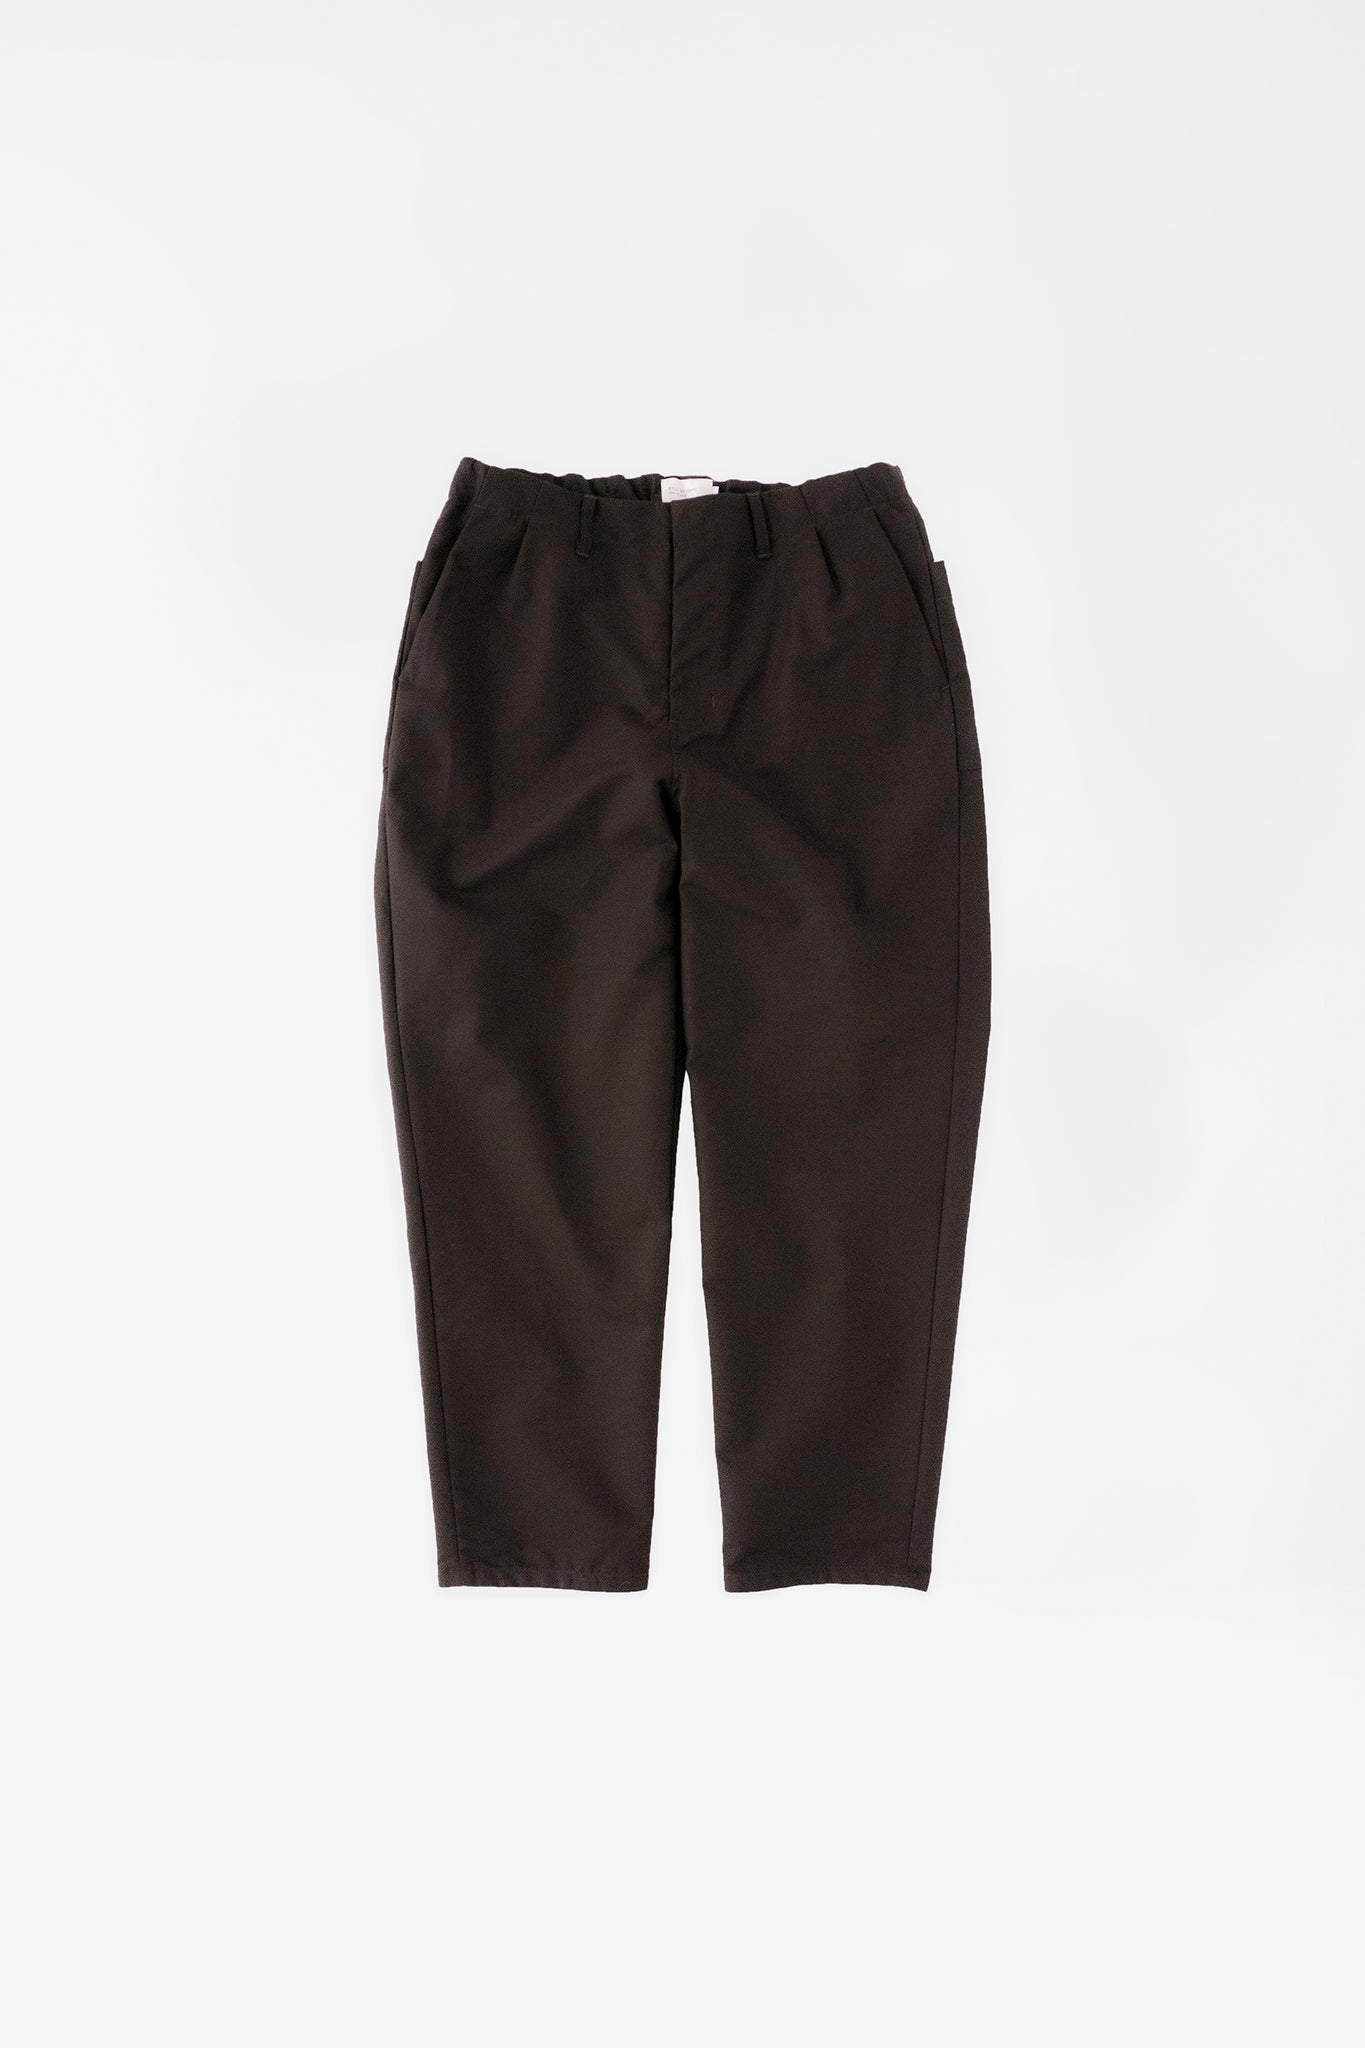 Cloth tapered pants dark brown